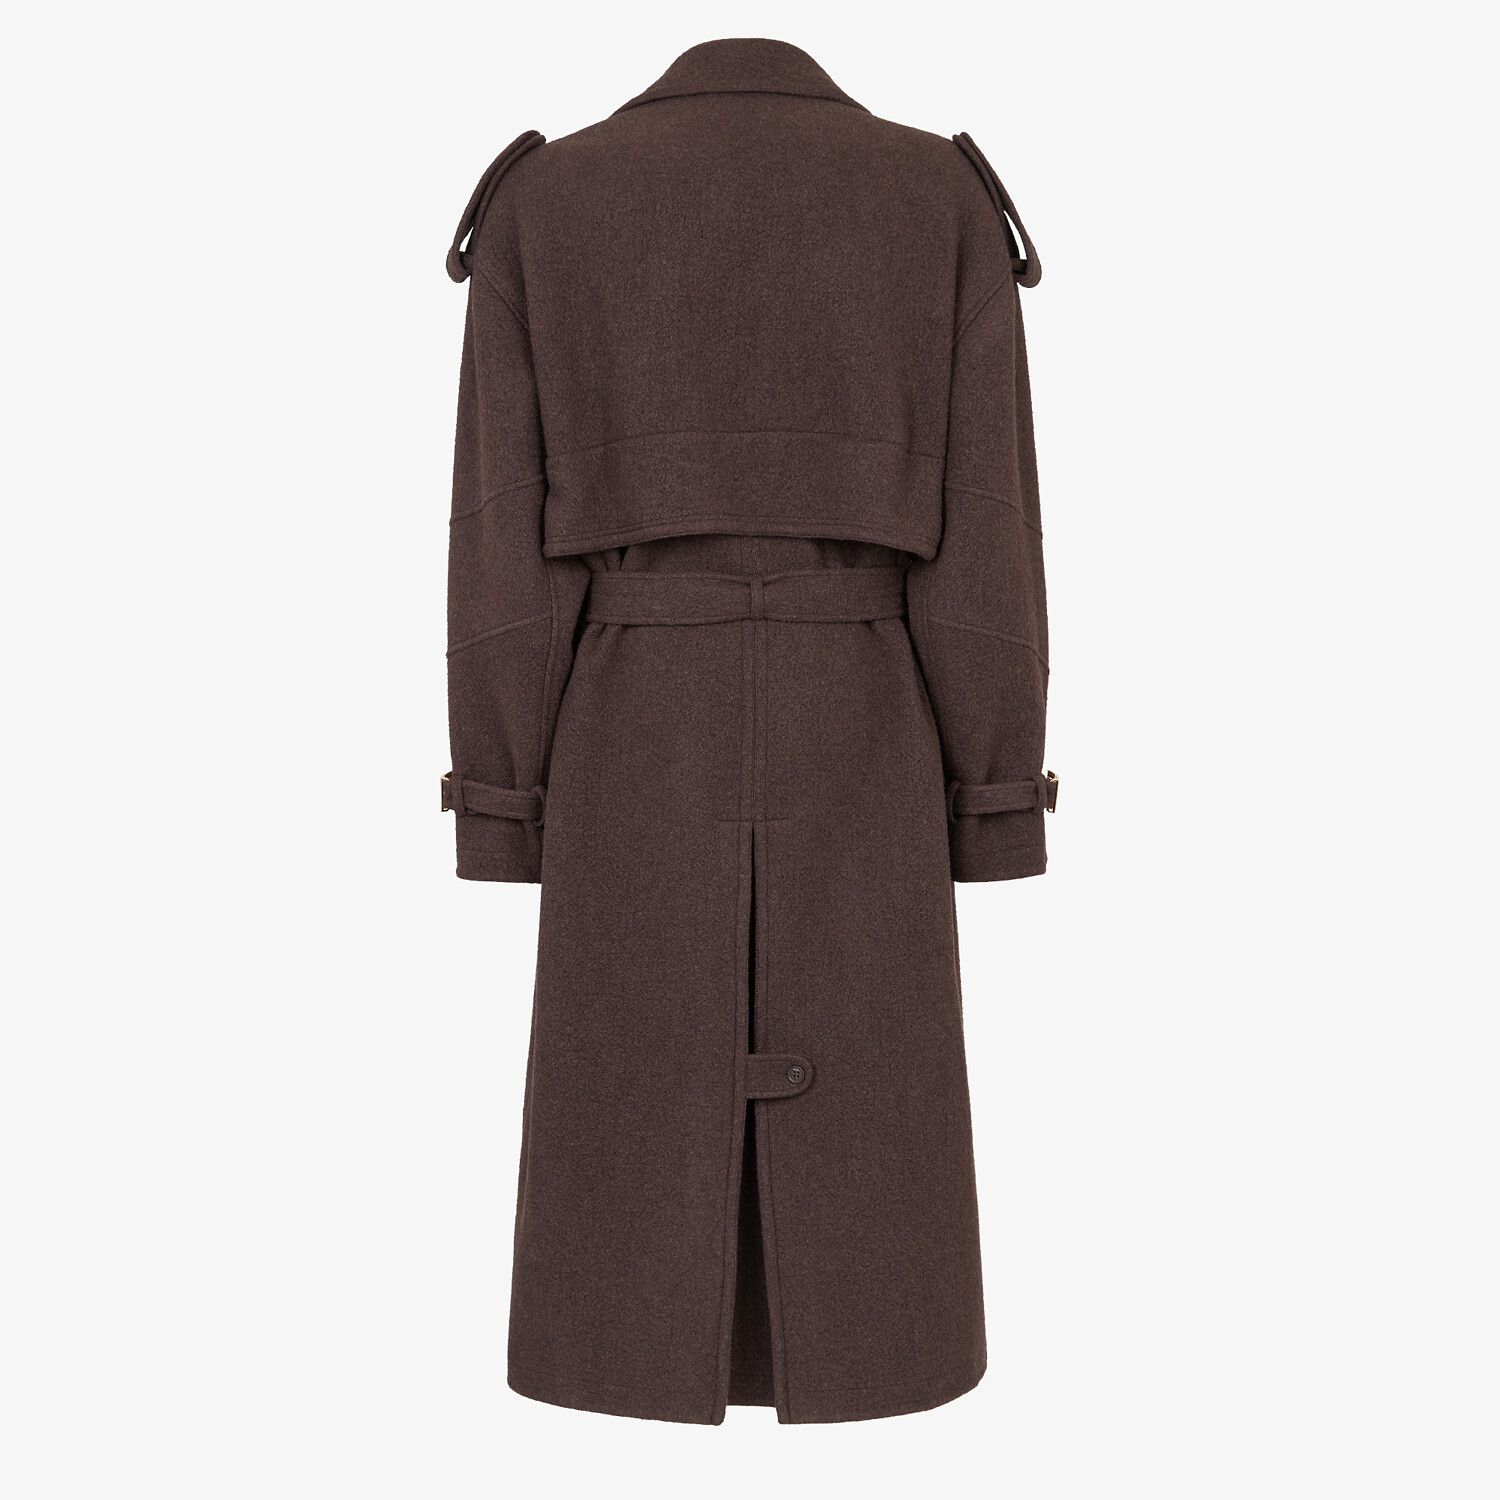 FENDI TRENCH COAT - Brown cashmere trench coat - view 2 detail